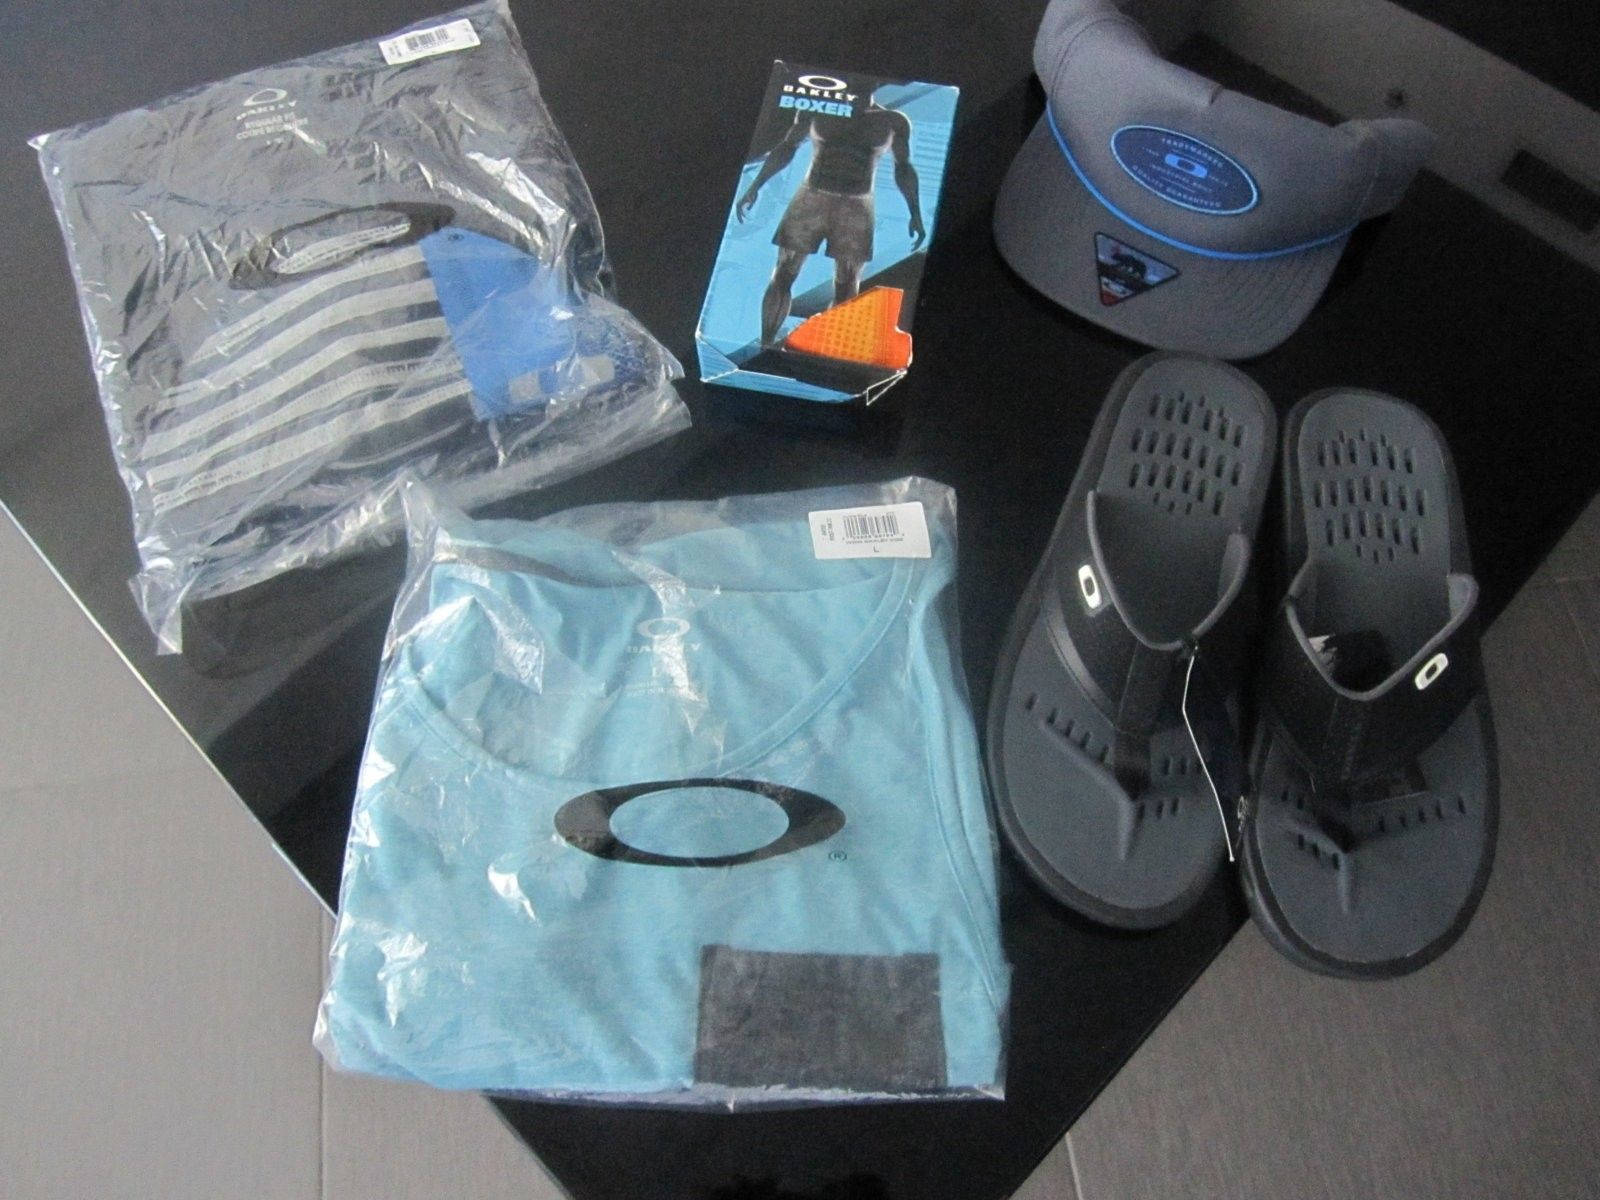 New Oakley clothing items size L - pic 1.JPG